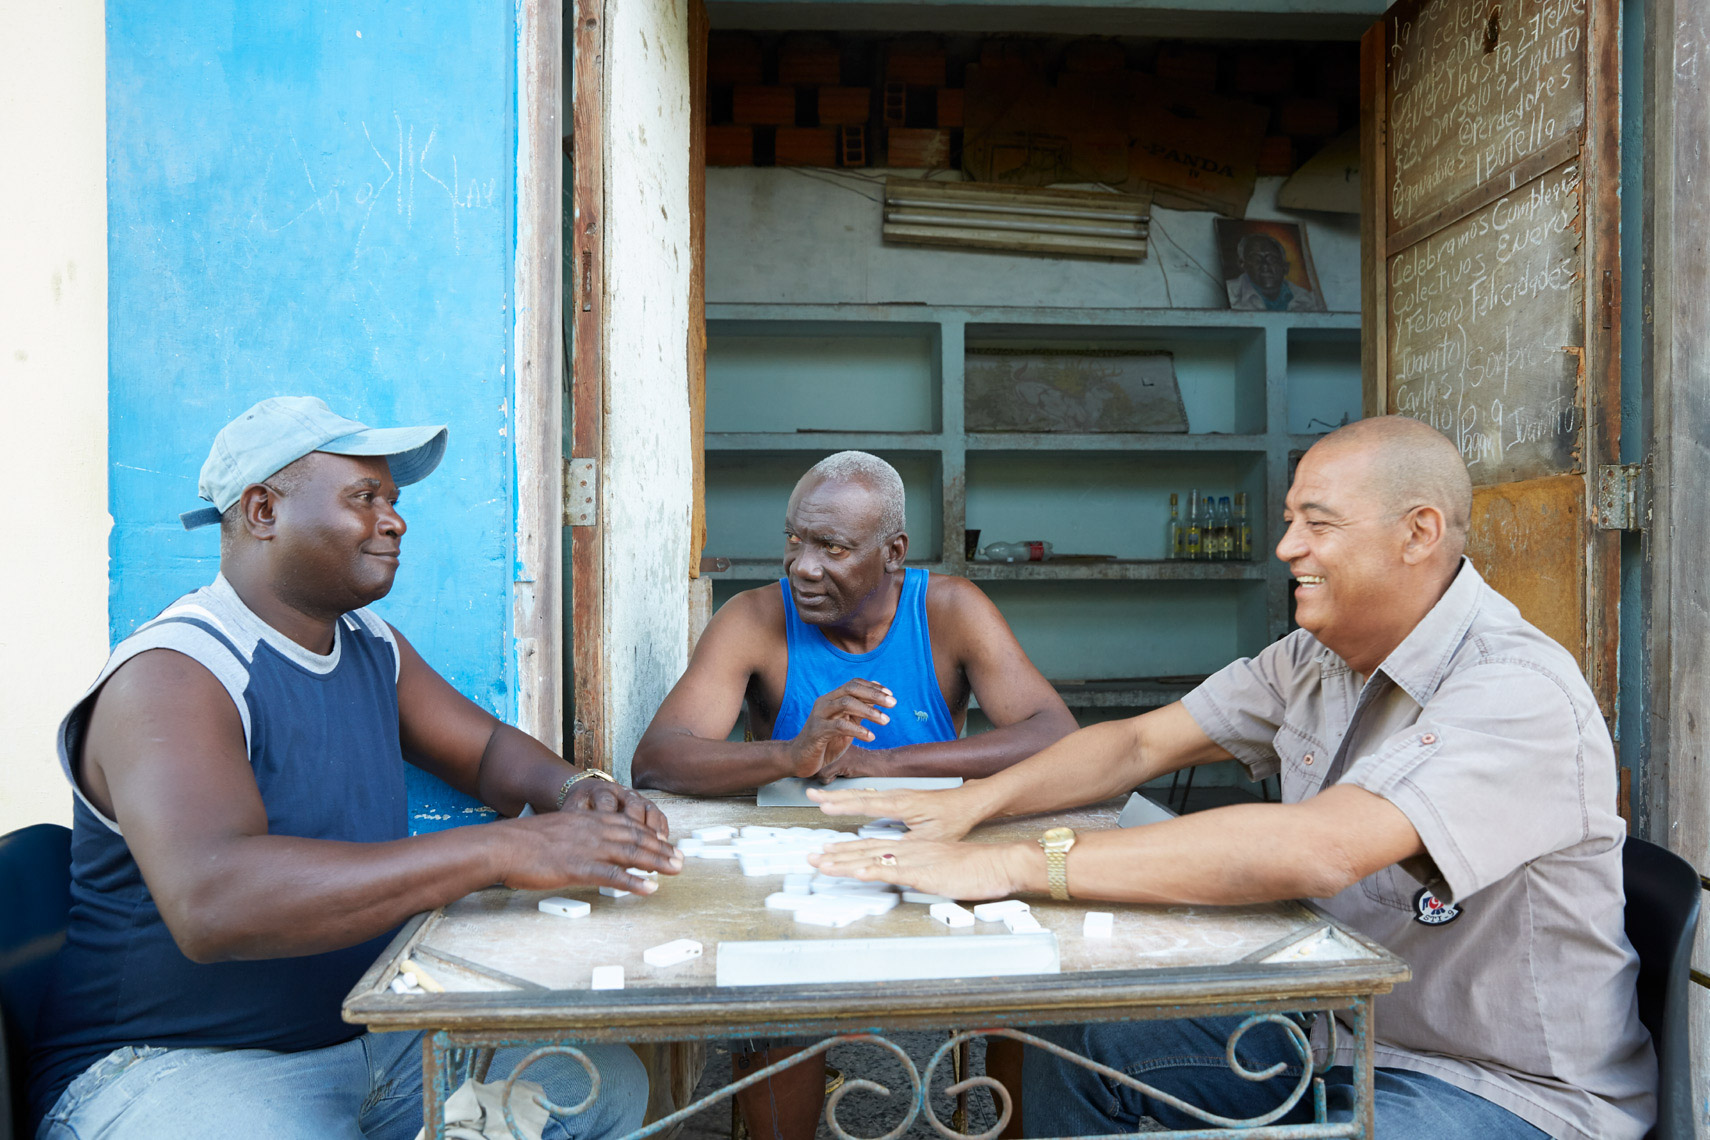 3 men playing dominos outside antique room in Cuba